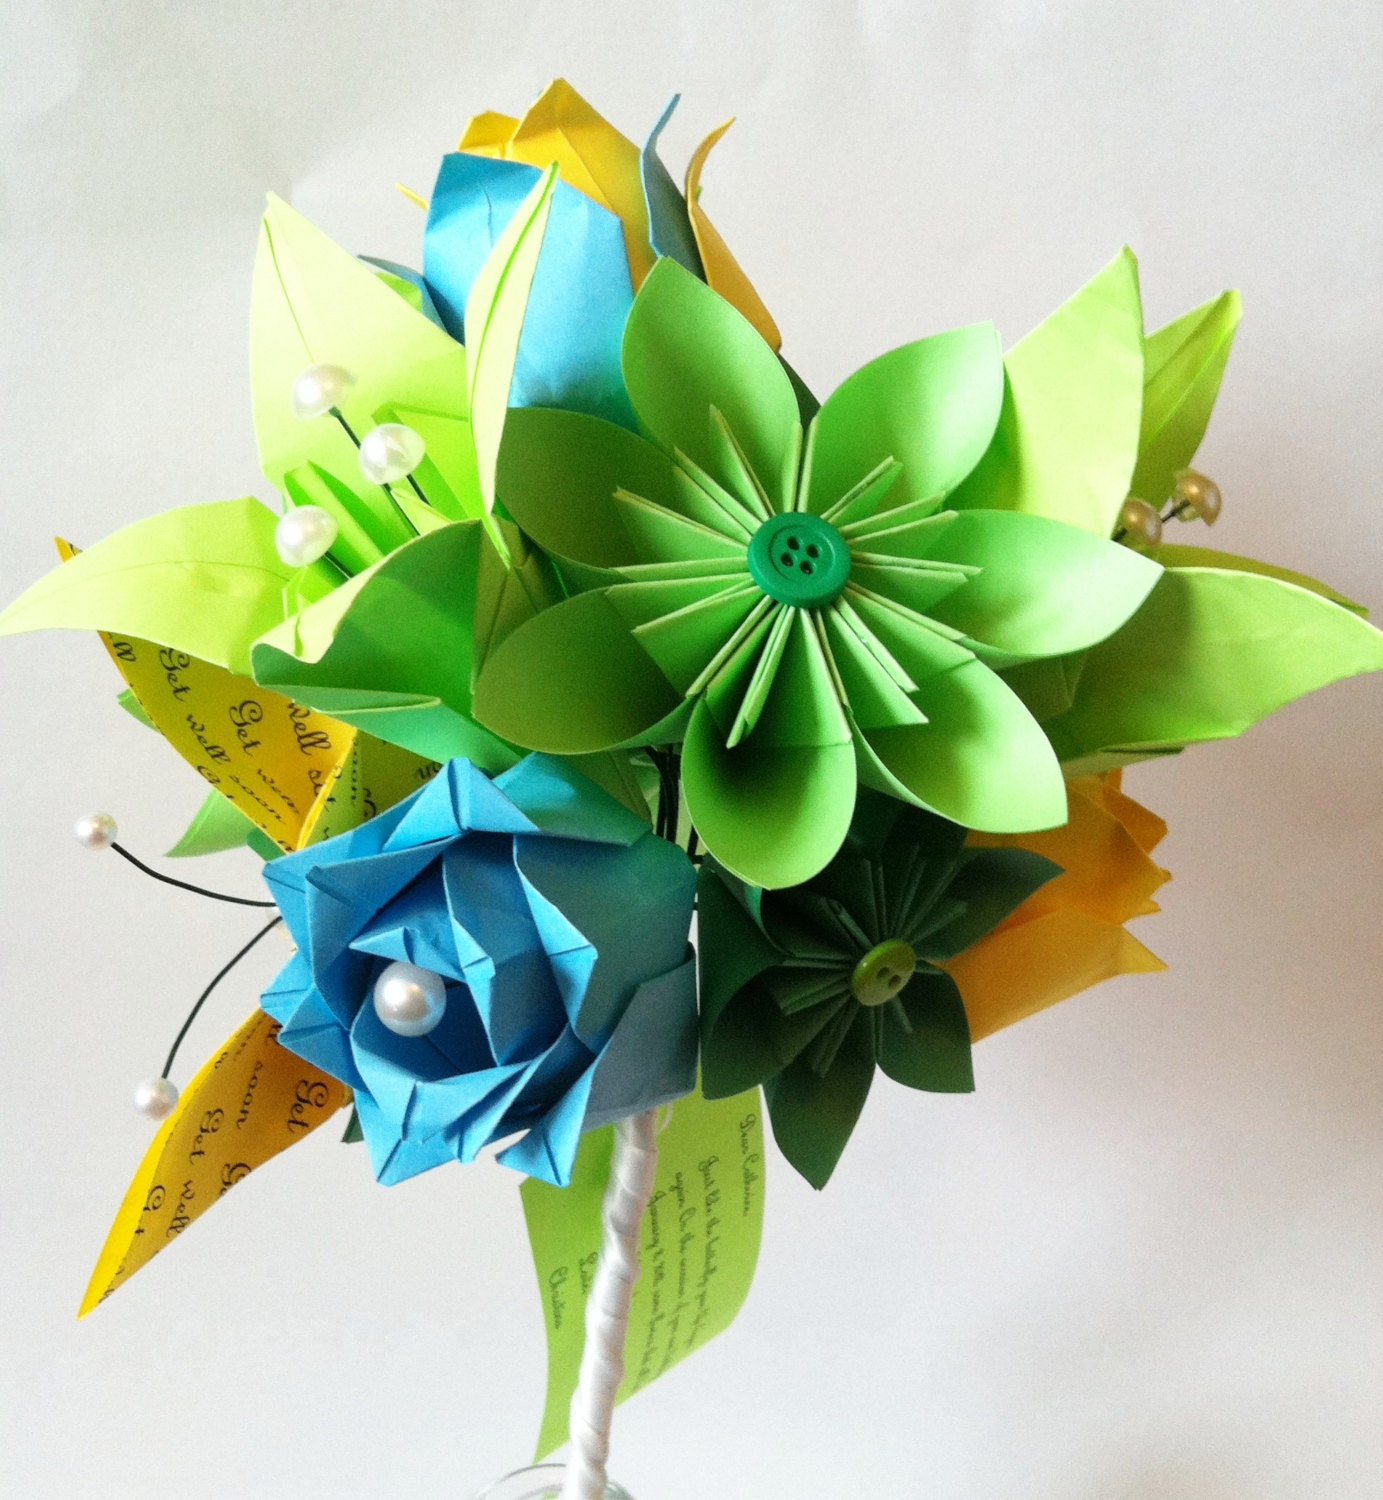 Get Well Soon Paper Flower bouquet hospital friendly eco